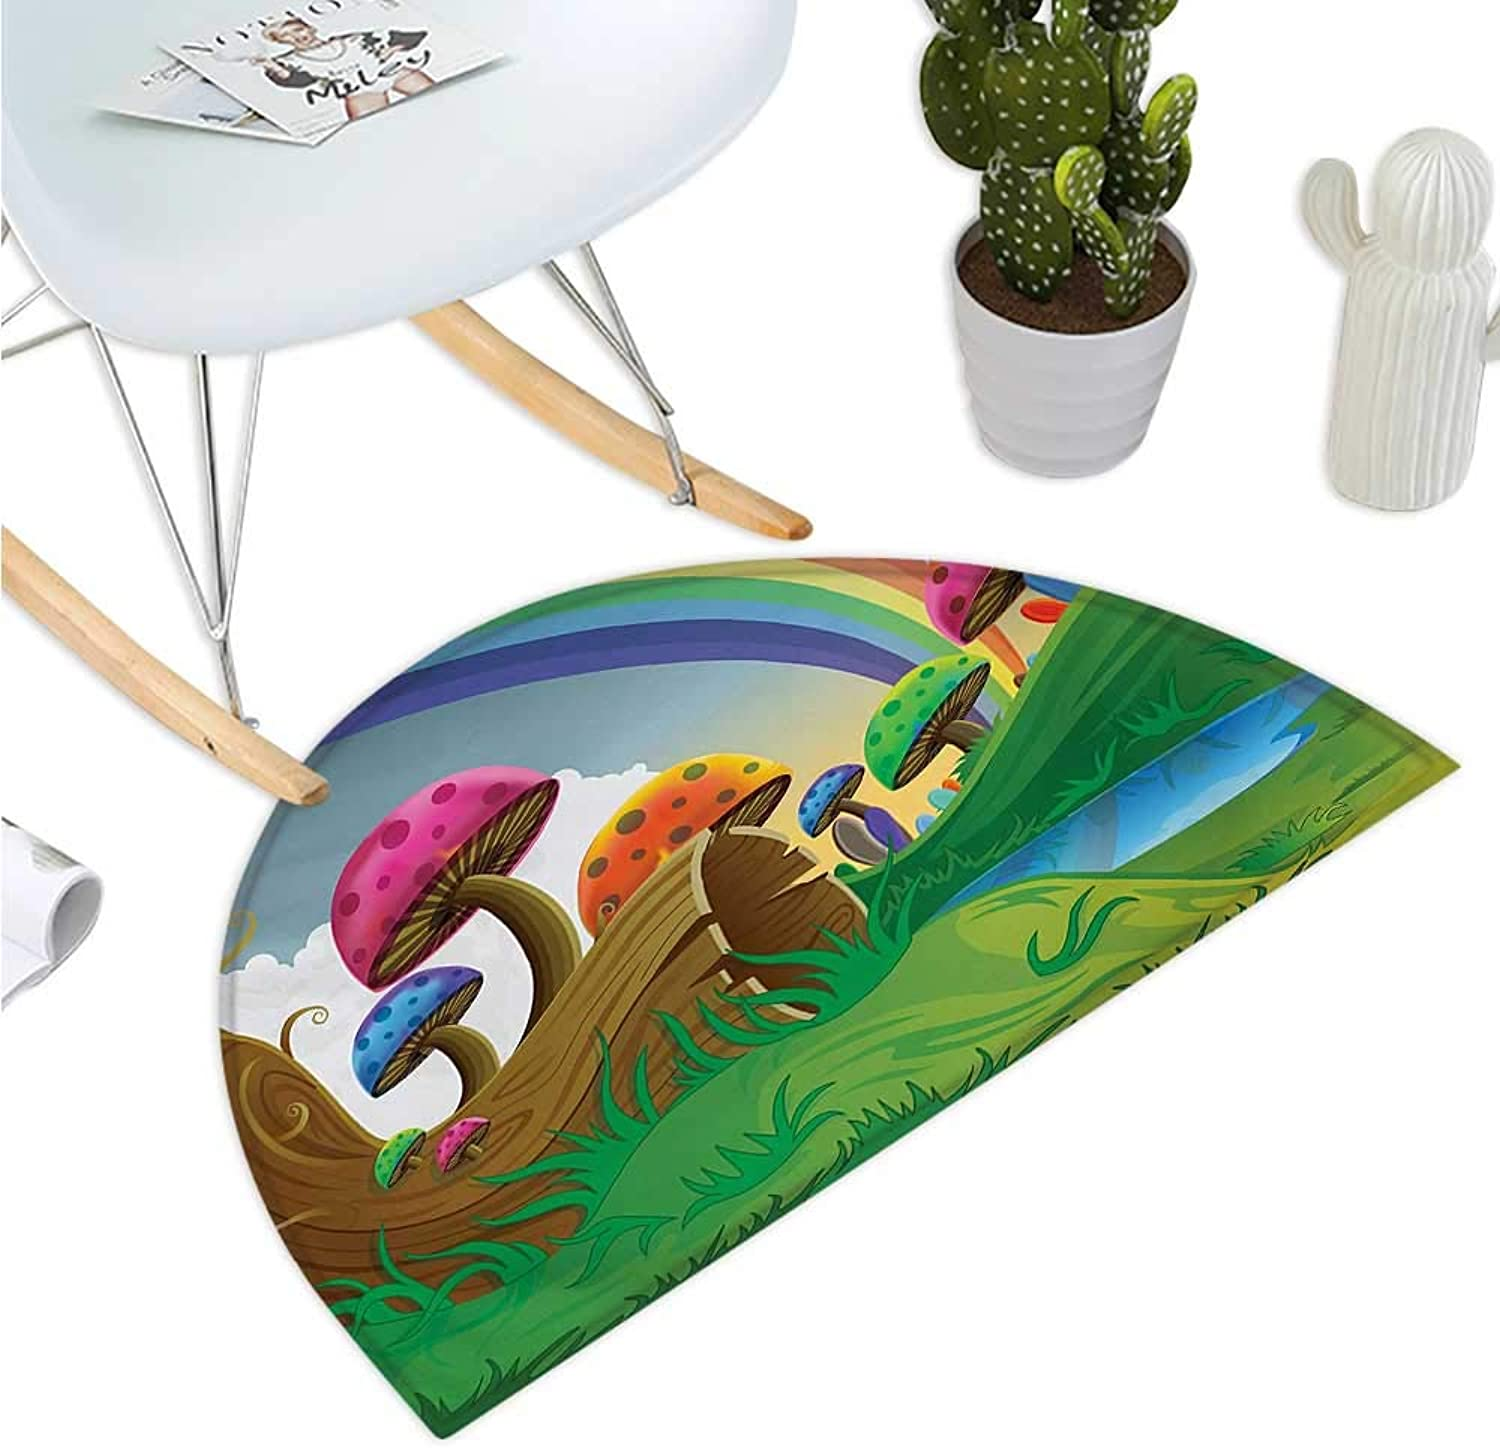 Mushroom Semicircular Cushion Countryside Sunny Playful Environment Foliage Rainbow Spring Scenery Kids Room Halfmoon doormats H 35.4  xD 53.1  Multicolor